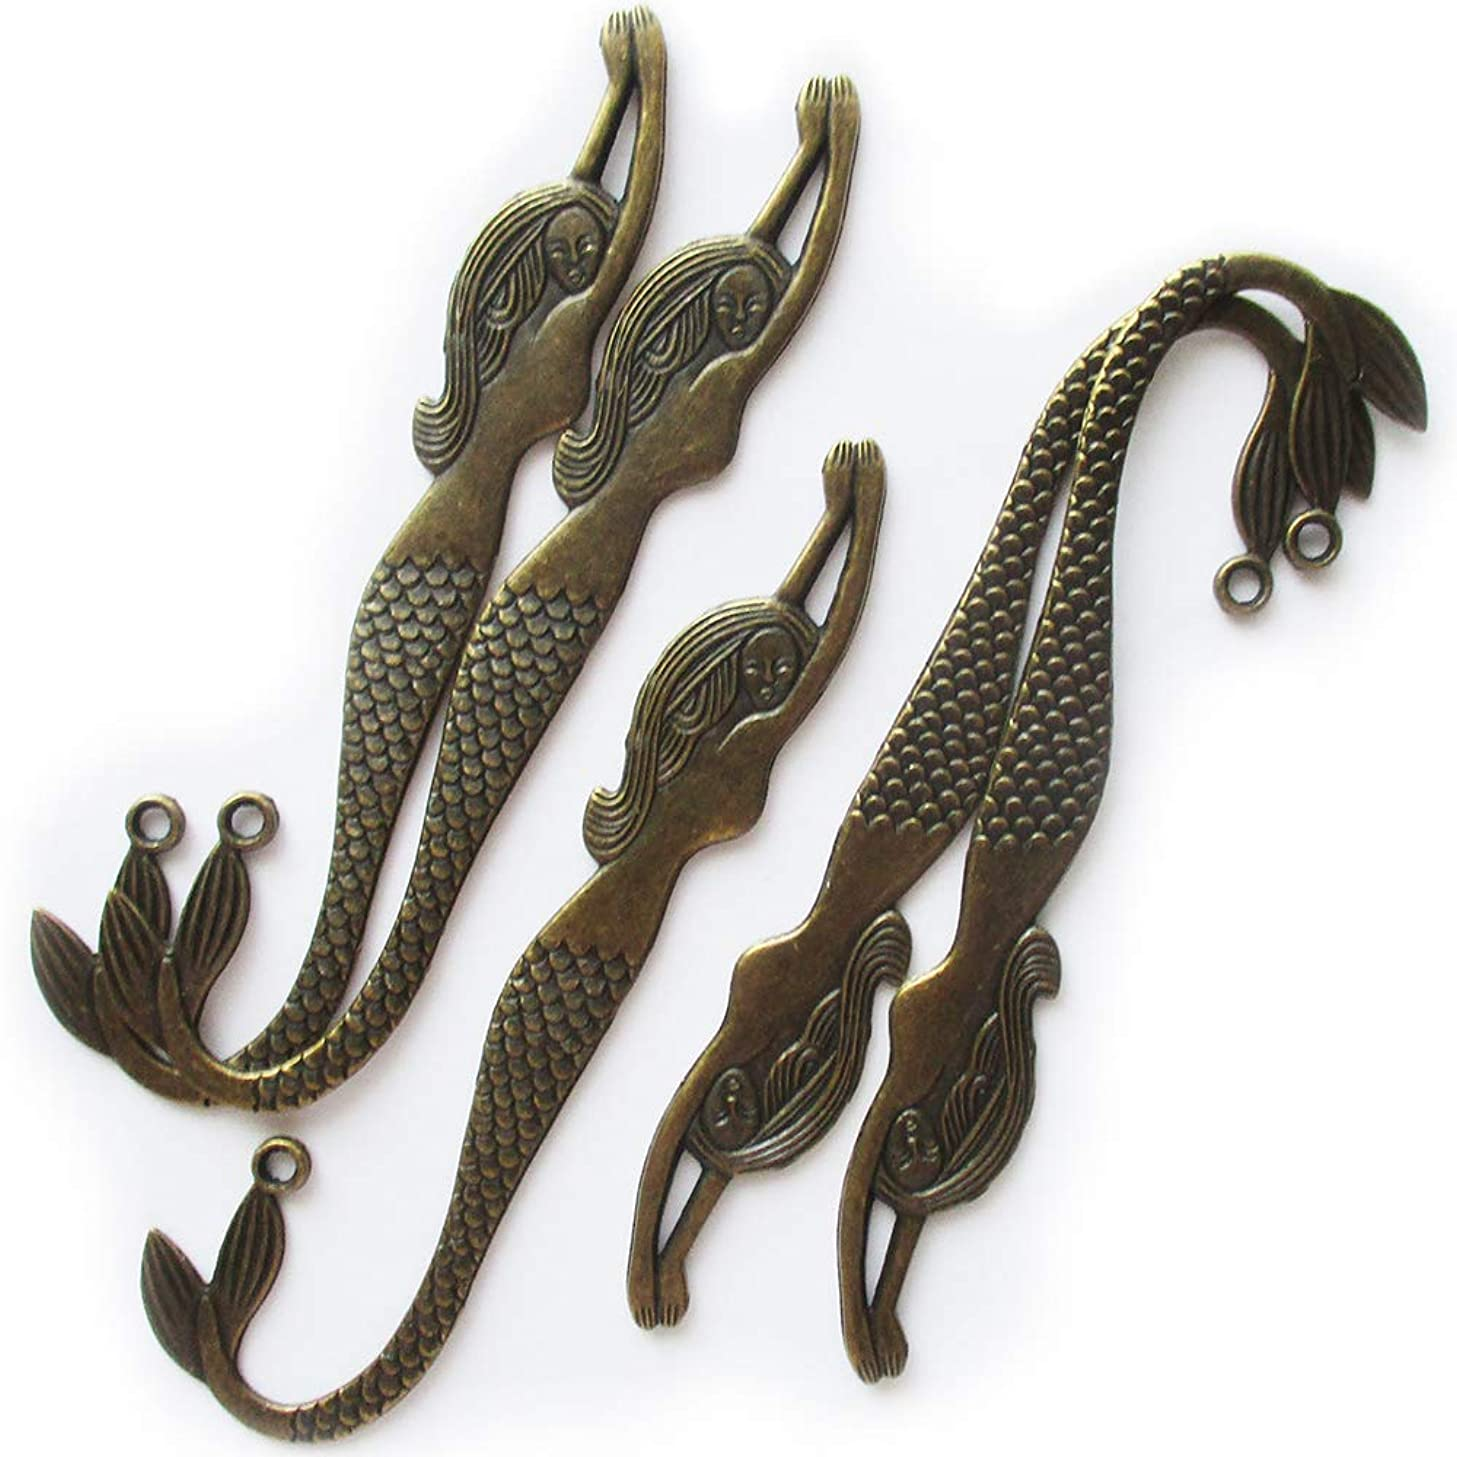 Heather's cf 5 Pieces Mermaid Bookmark Bronze Long Spacer Findings with 3 mm Hole for Jewelry Making